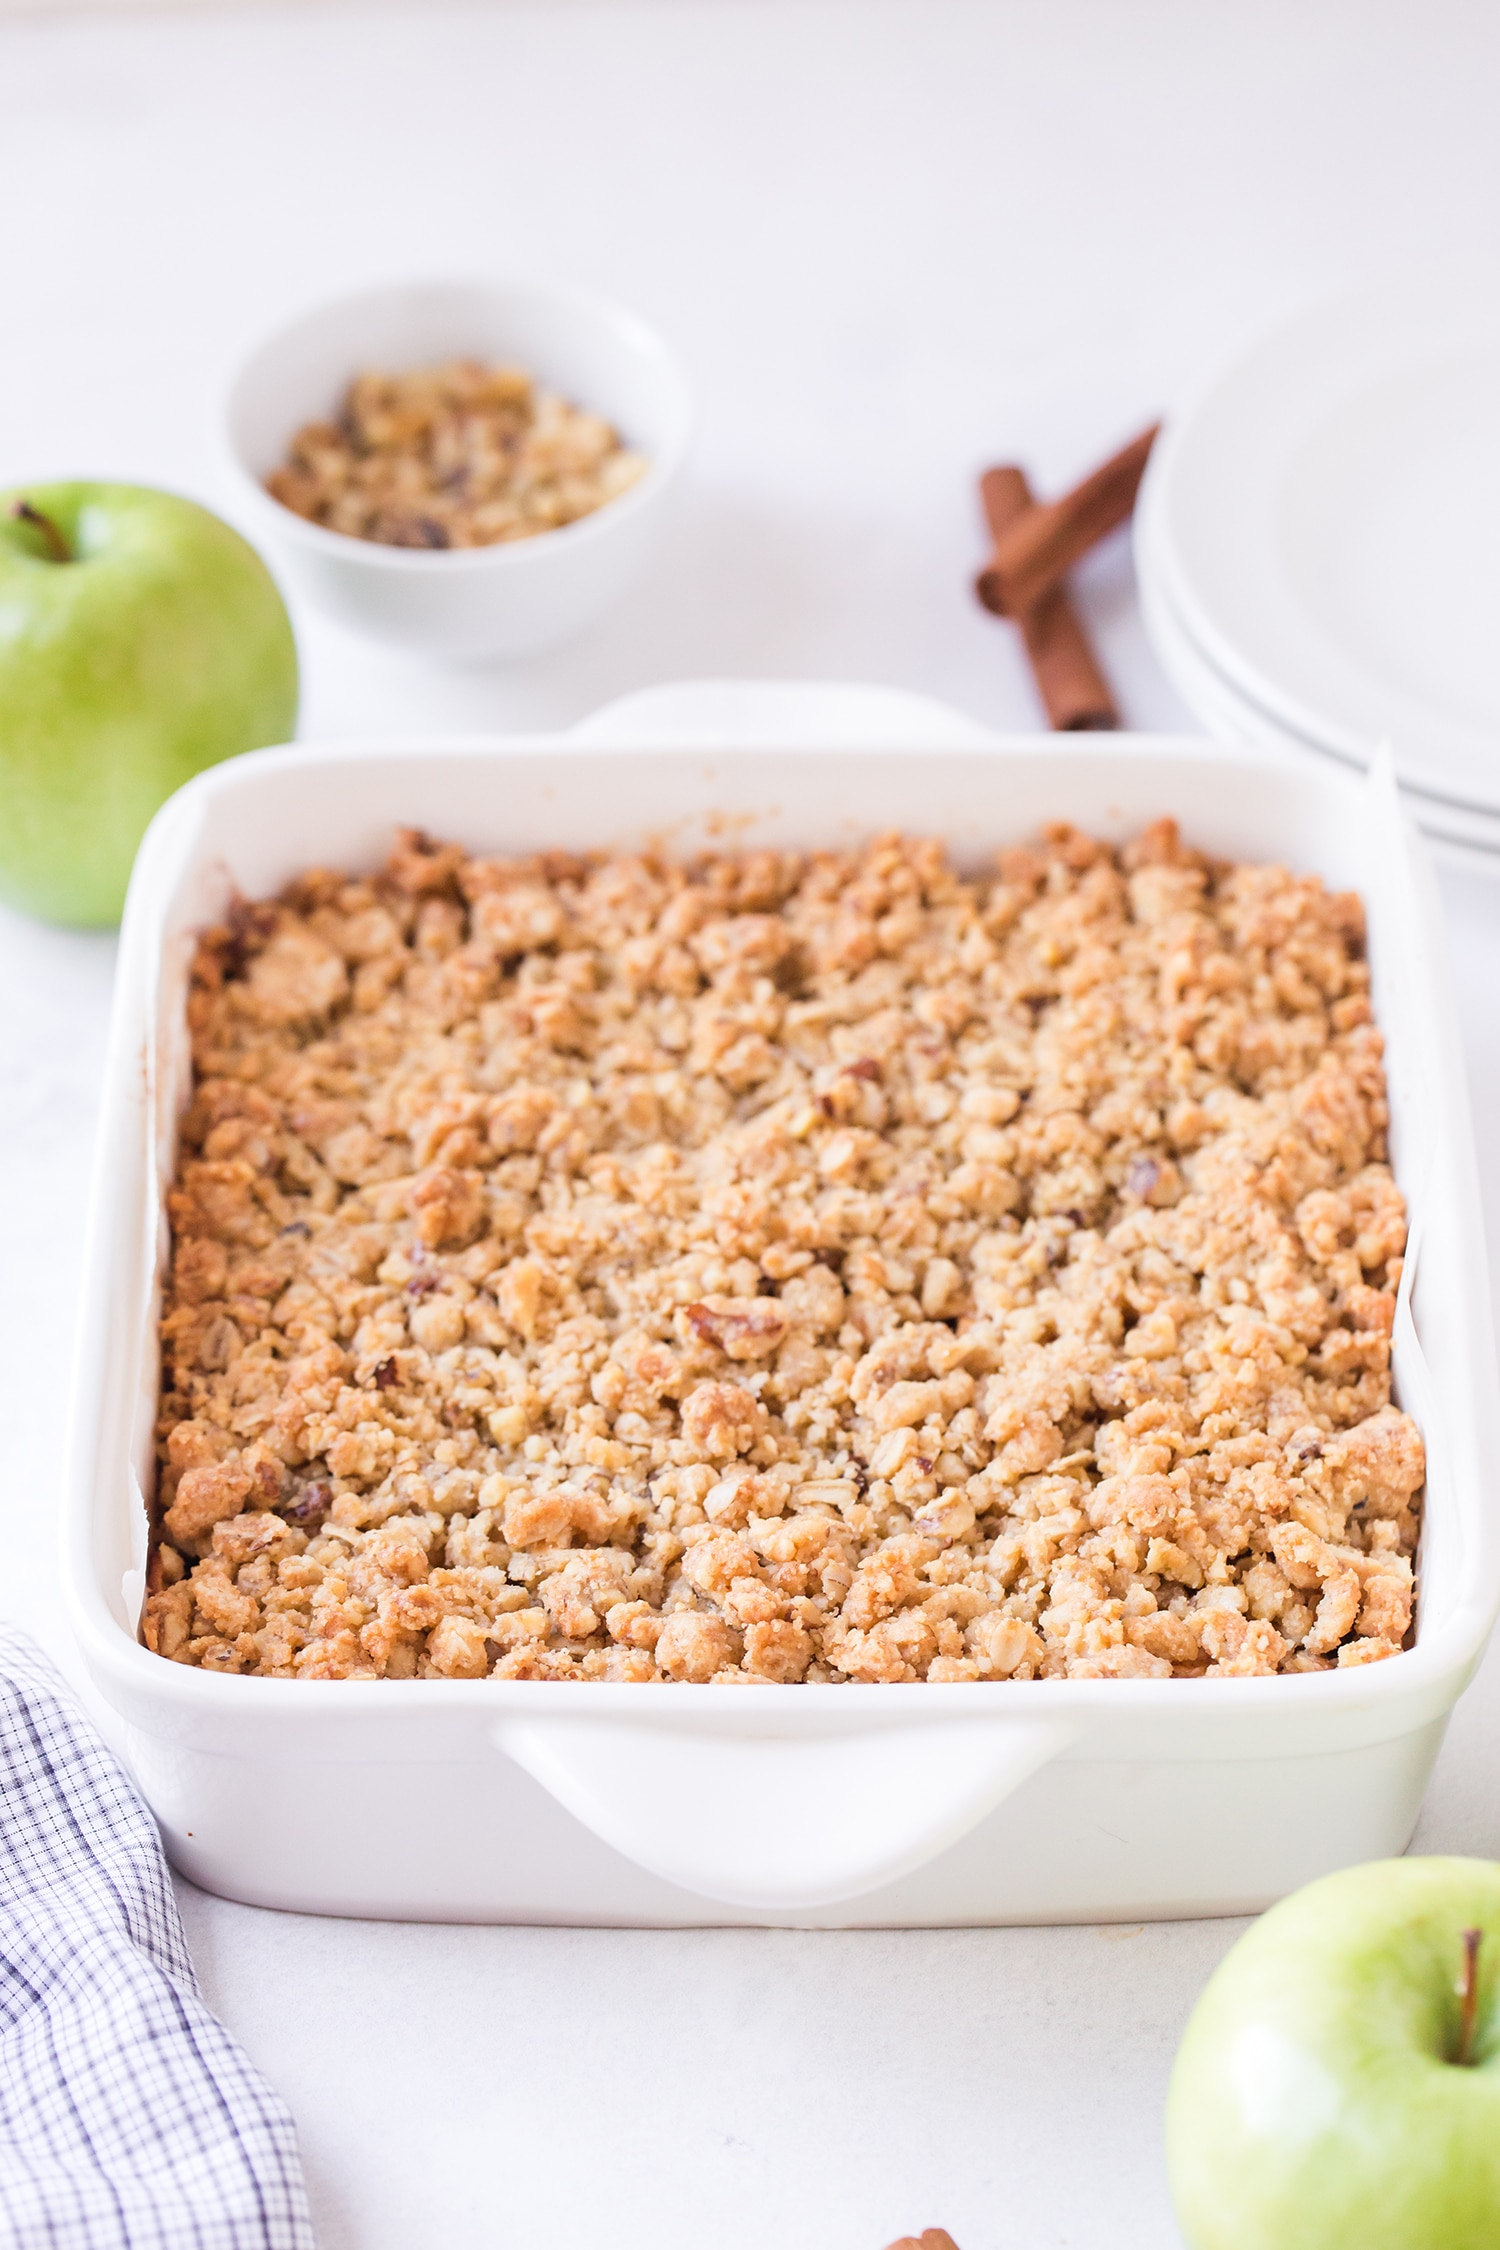 Yummy Apple Pie Bars in a white baking dish with apples and cinnamon sticks in background